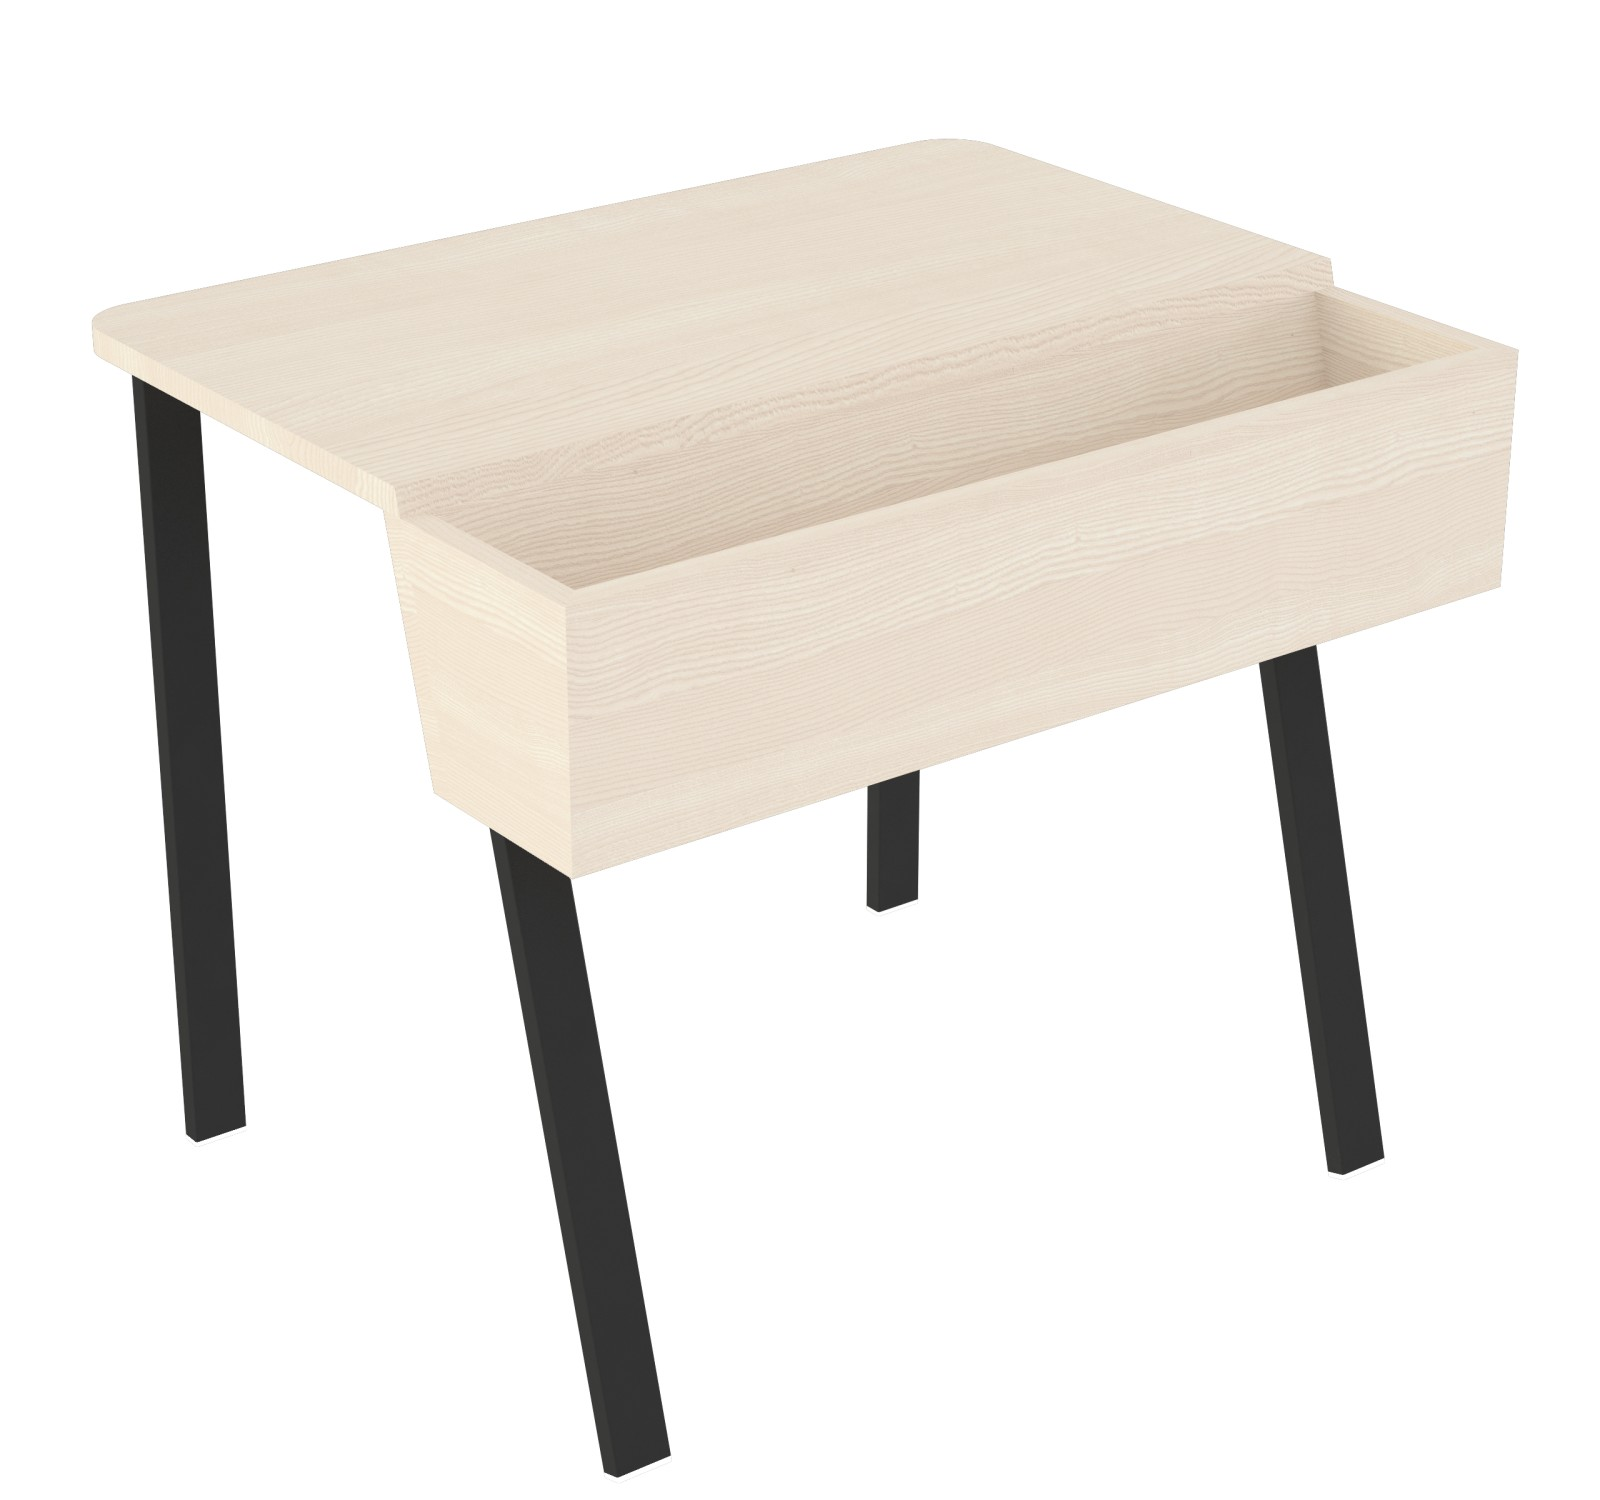 Wing Desk for One Wing Desk for One-white stained solid ash tabletop-black metal frame